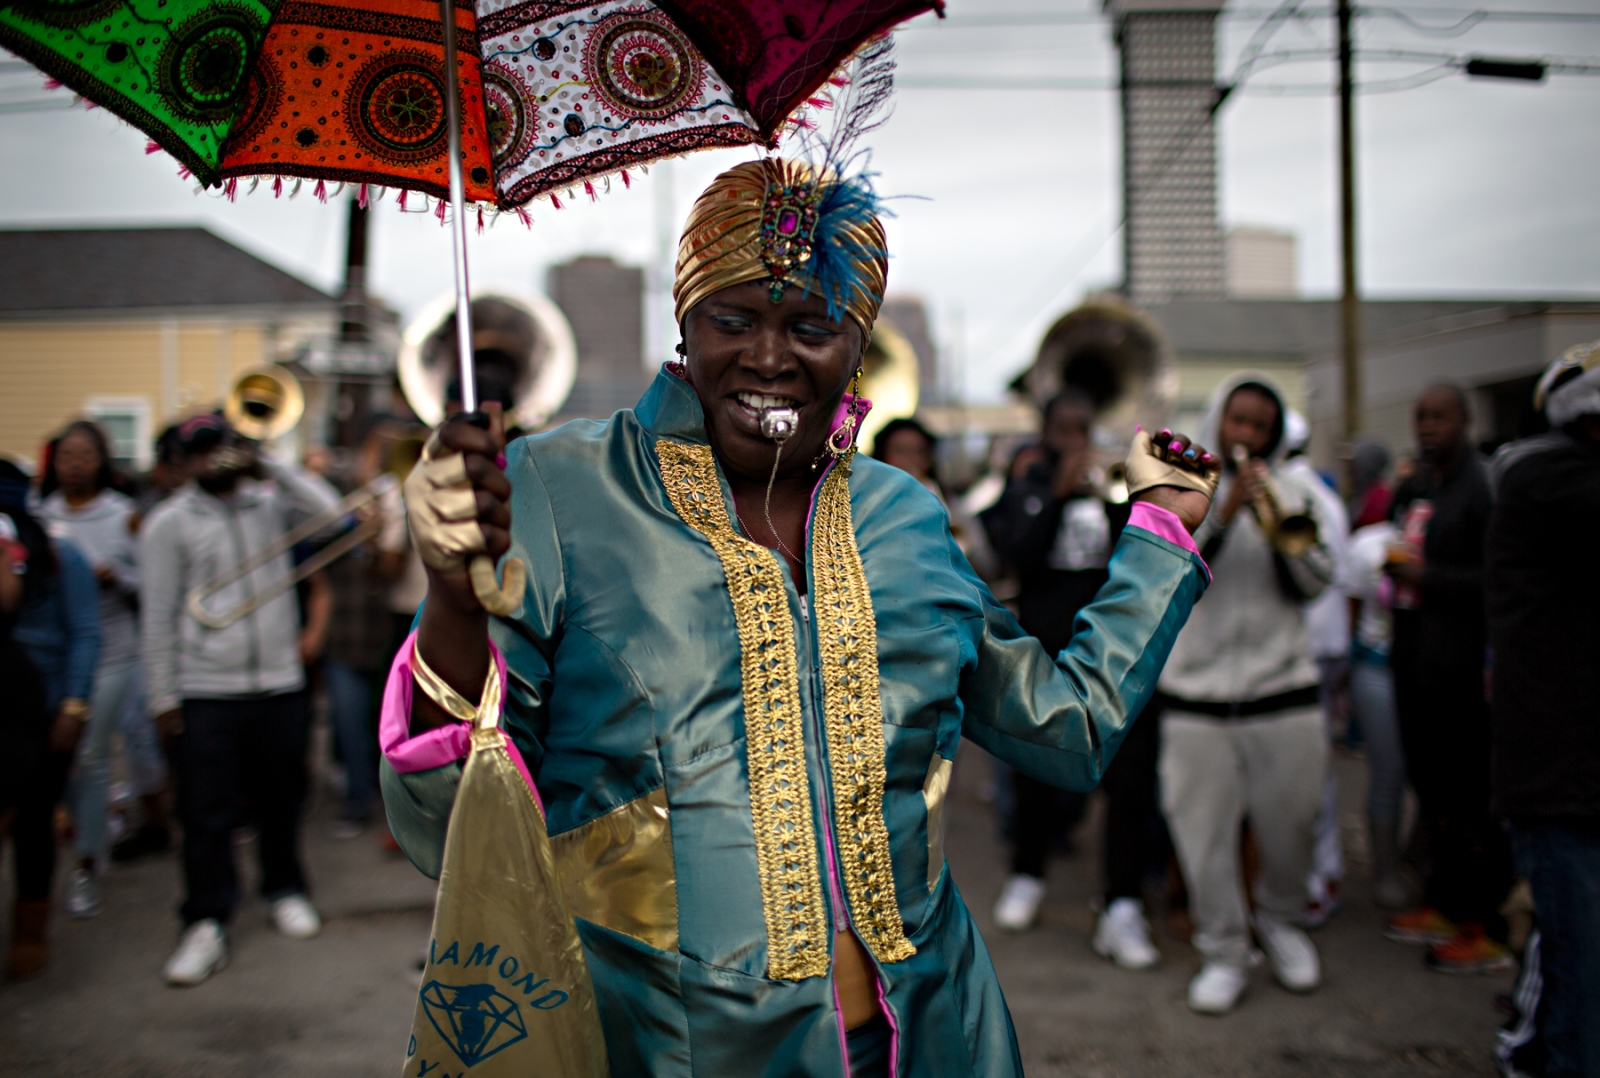 A member of the Diamond Dynasty Social Aid and Pleasure Club leads the brass band as part of the Second Line Parade.